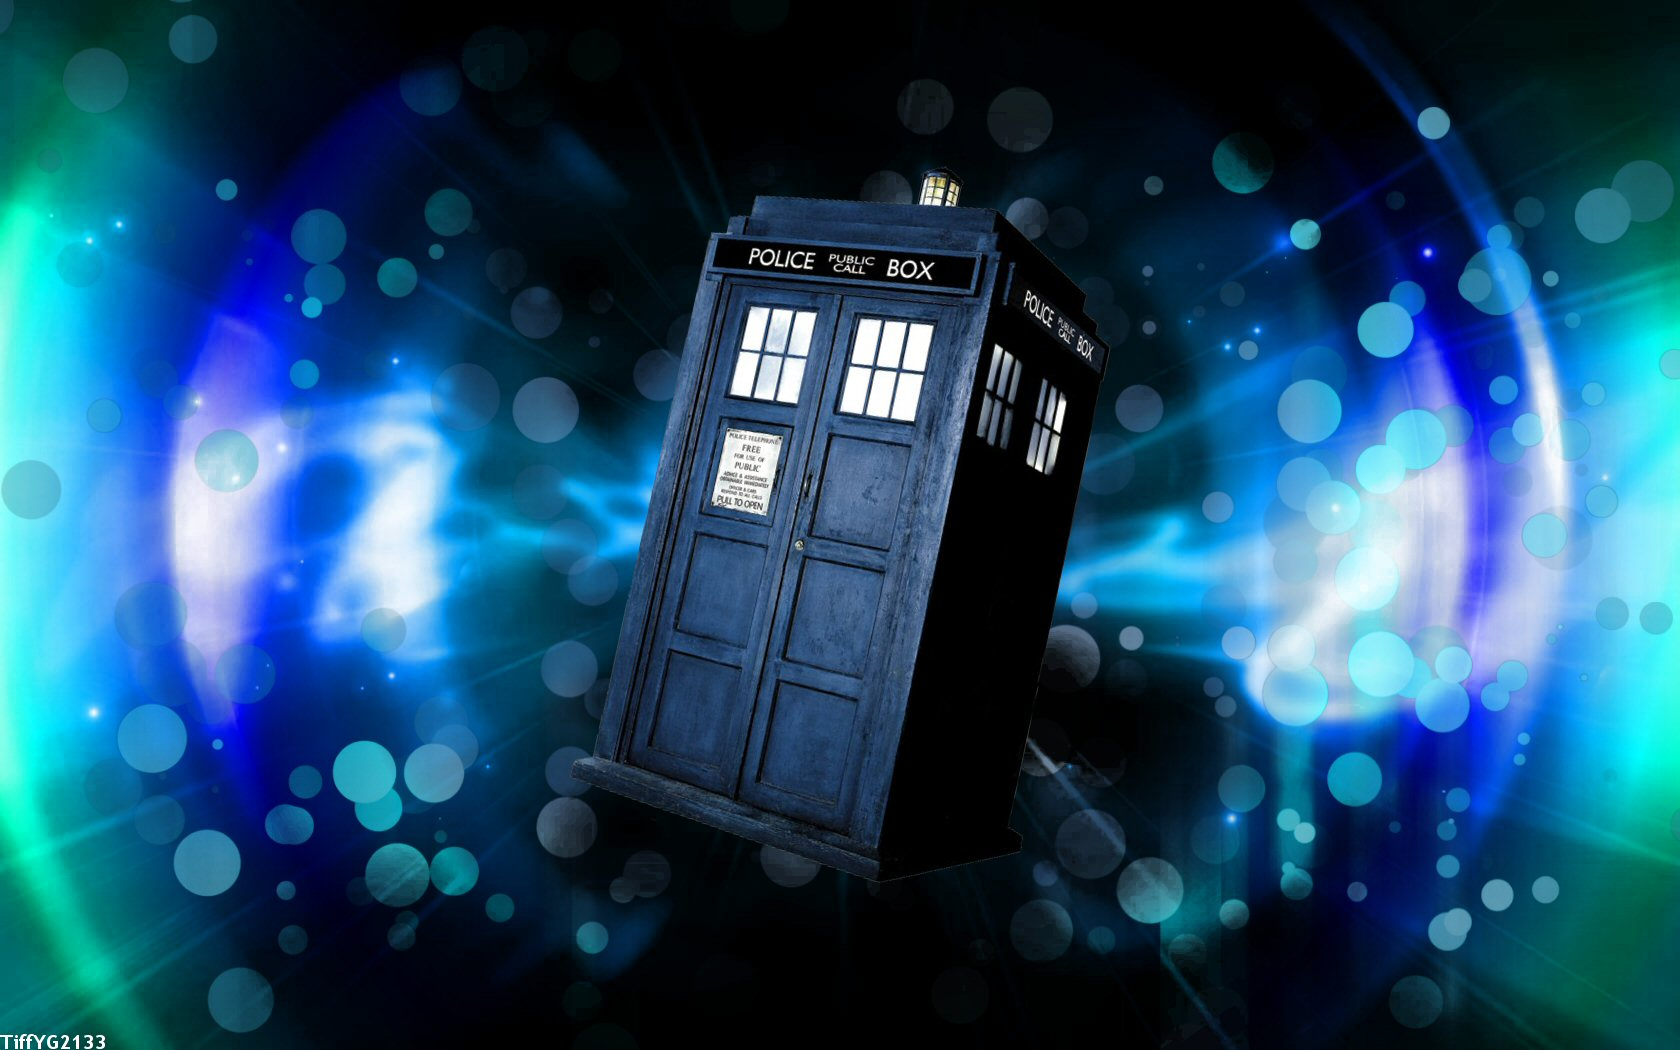 TARDIS Doctor Wallpaper 1680x1050 TARDIS Doctor Who 1680x1050